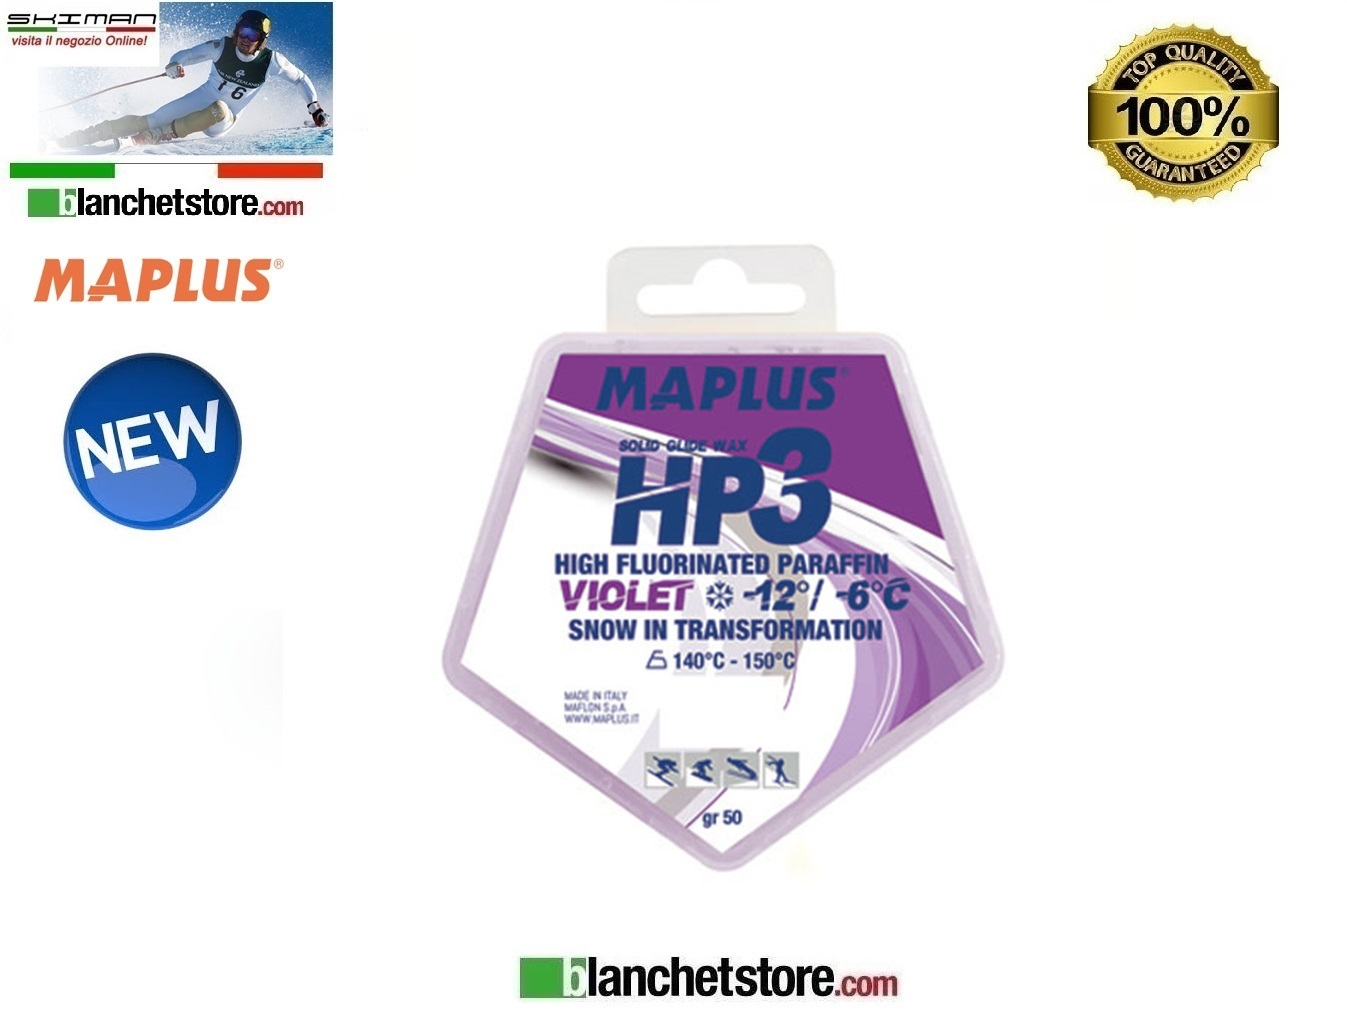 Sciolina MAPLUS HIGH FLUO HP 3 Conf 50 gr VIOLET NEW